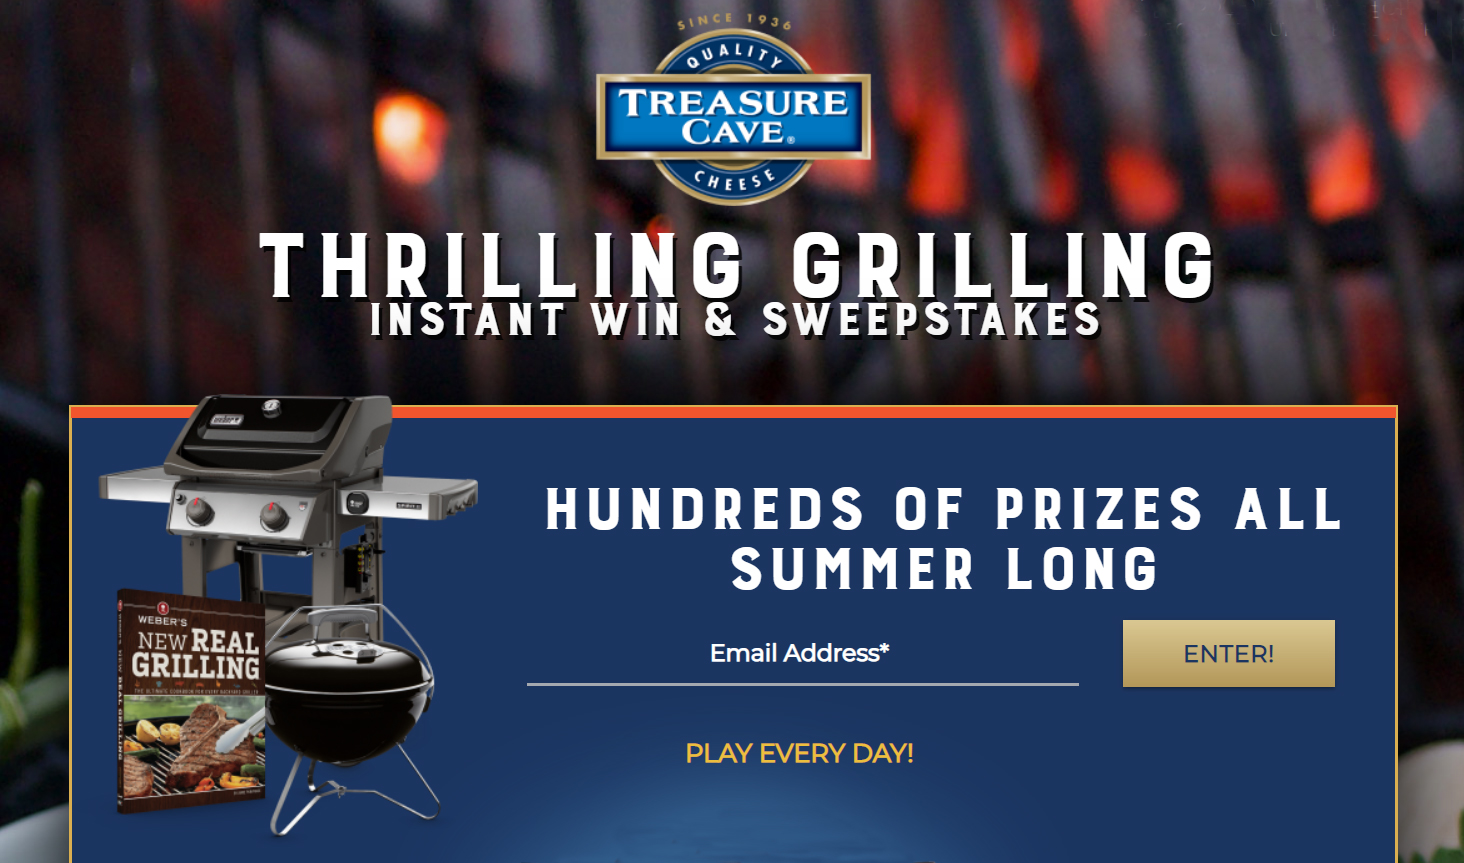 Treasure Cave Cheese Thrilling Grilling Instant Win Game